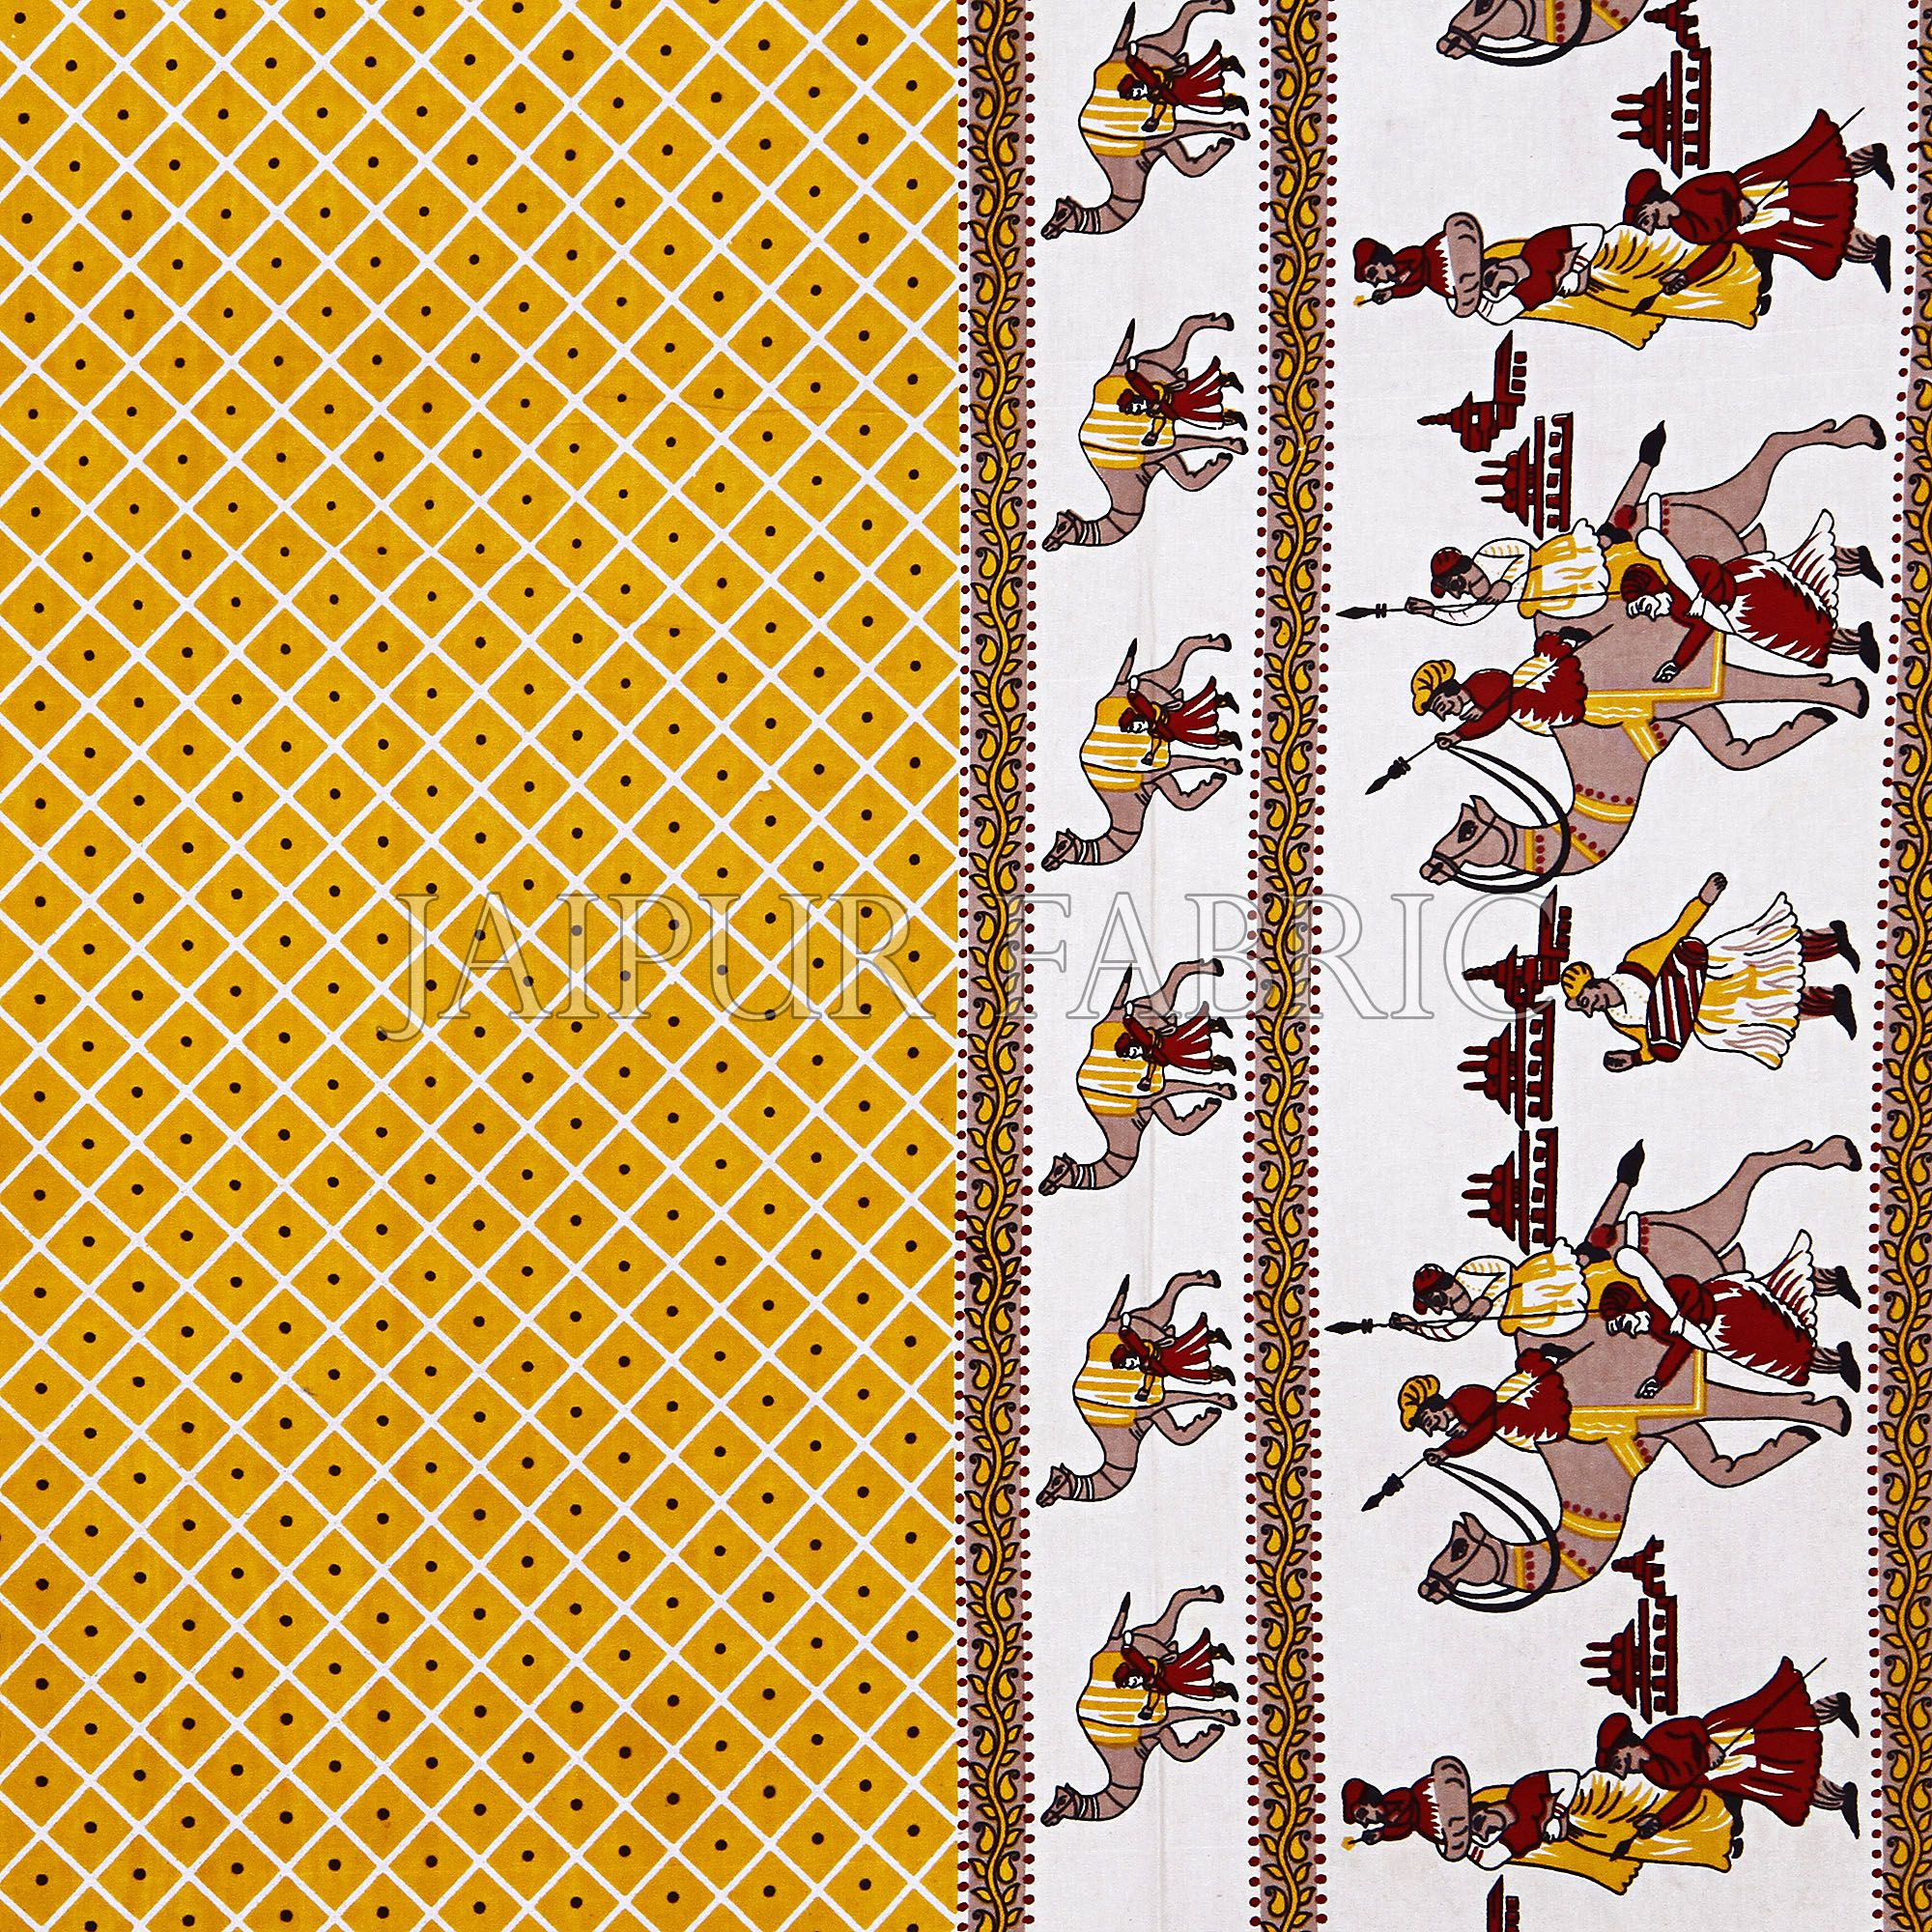 Yellow Border Fat Wedding Print Cotton Double Bed Sheet